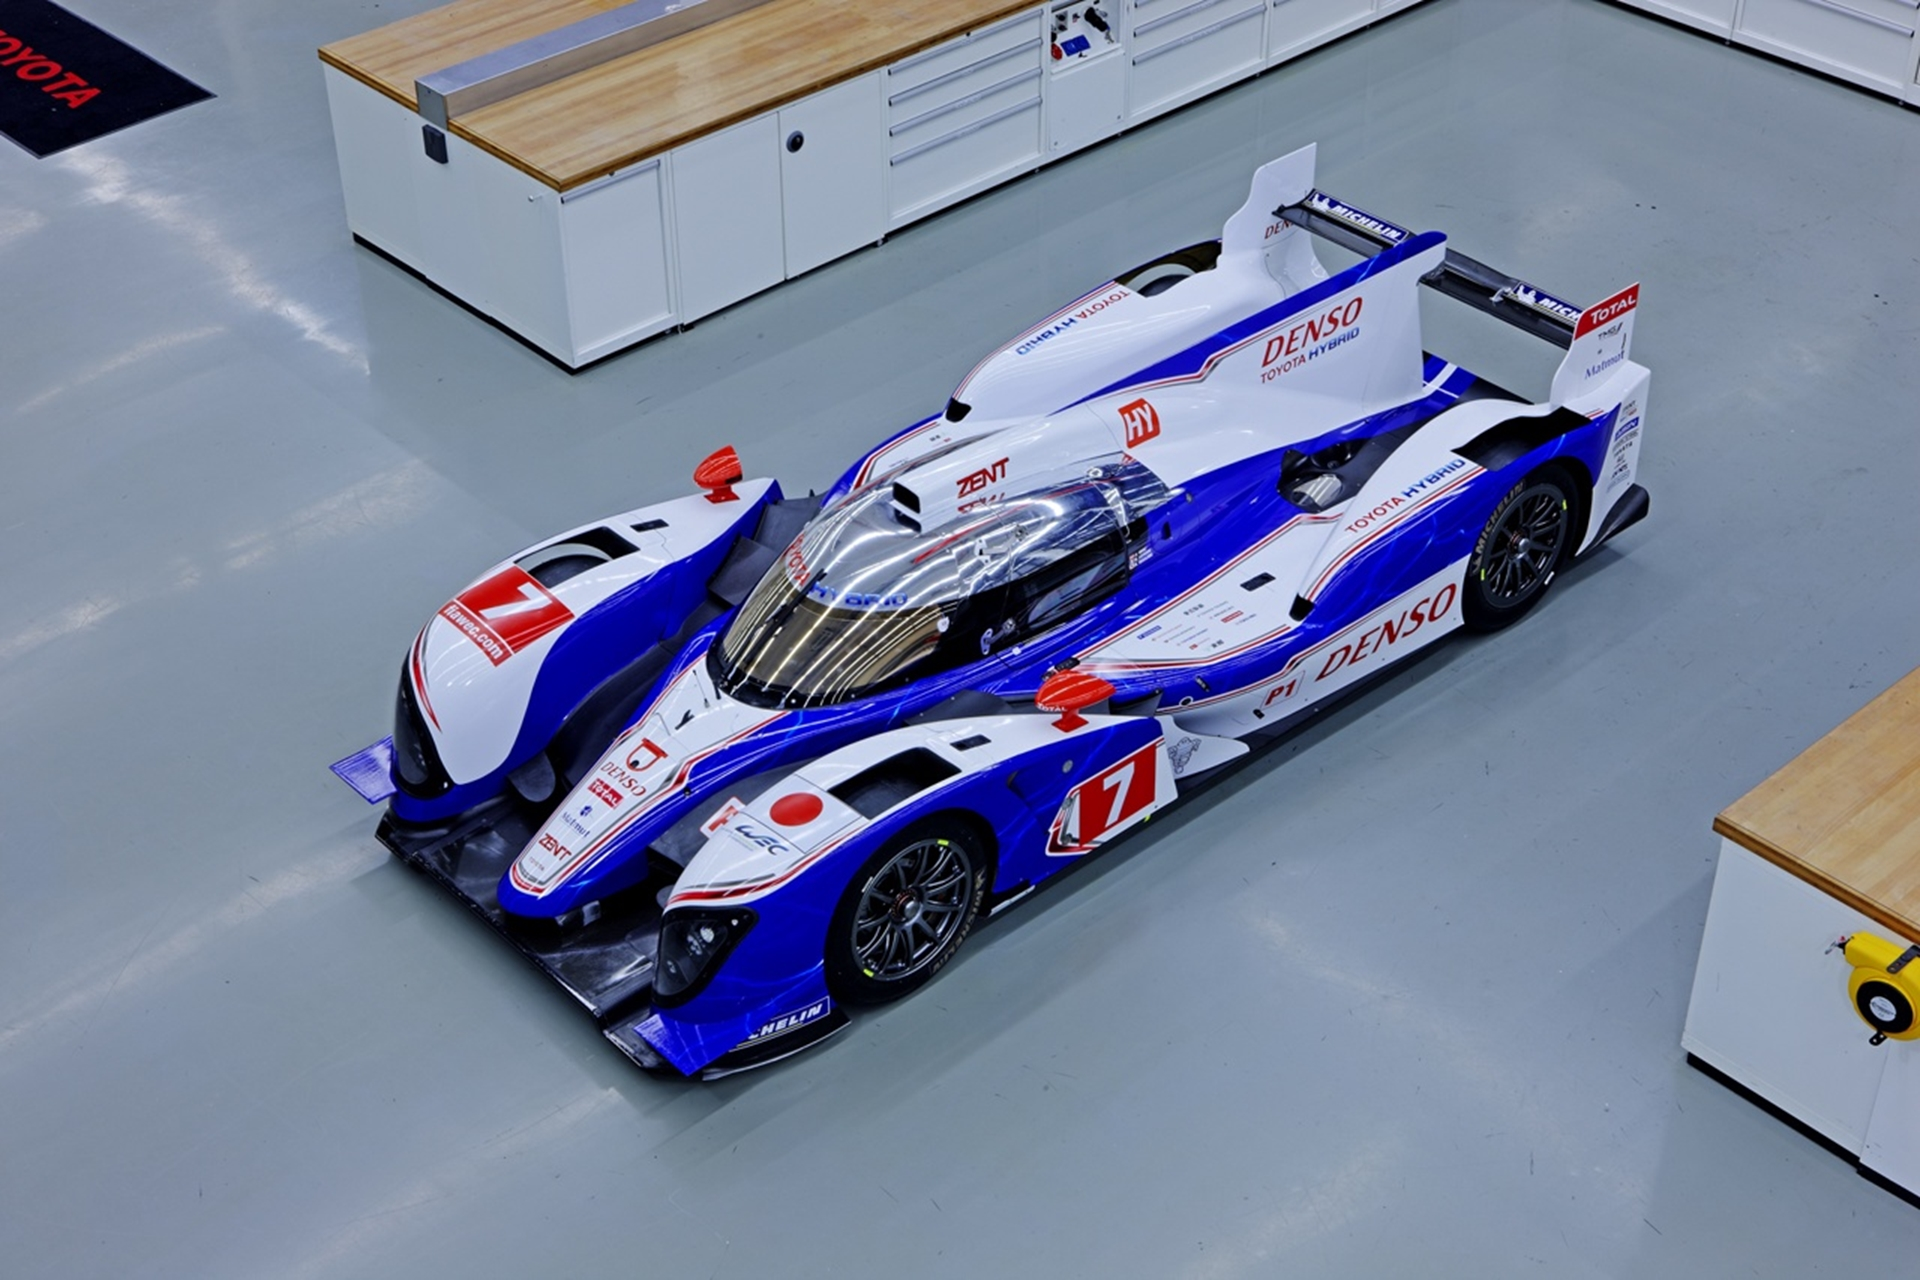 Toyota Racing ready for Le Mans